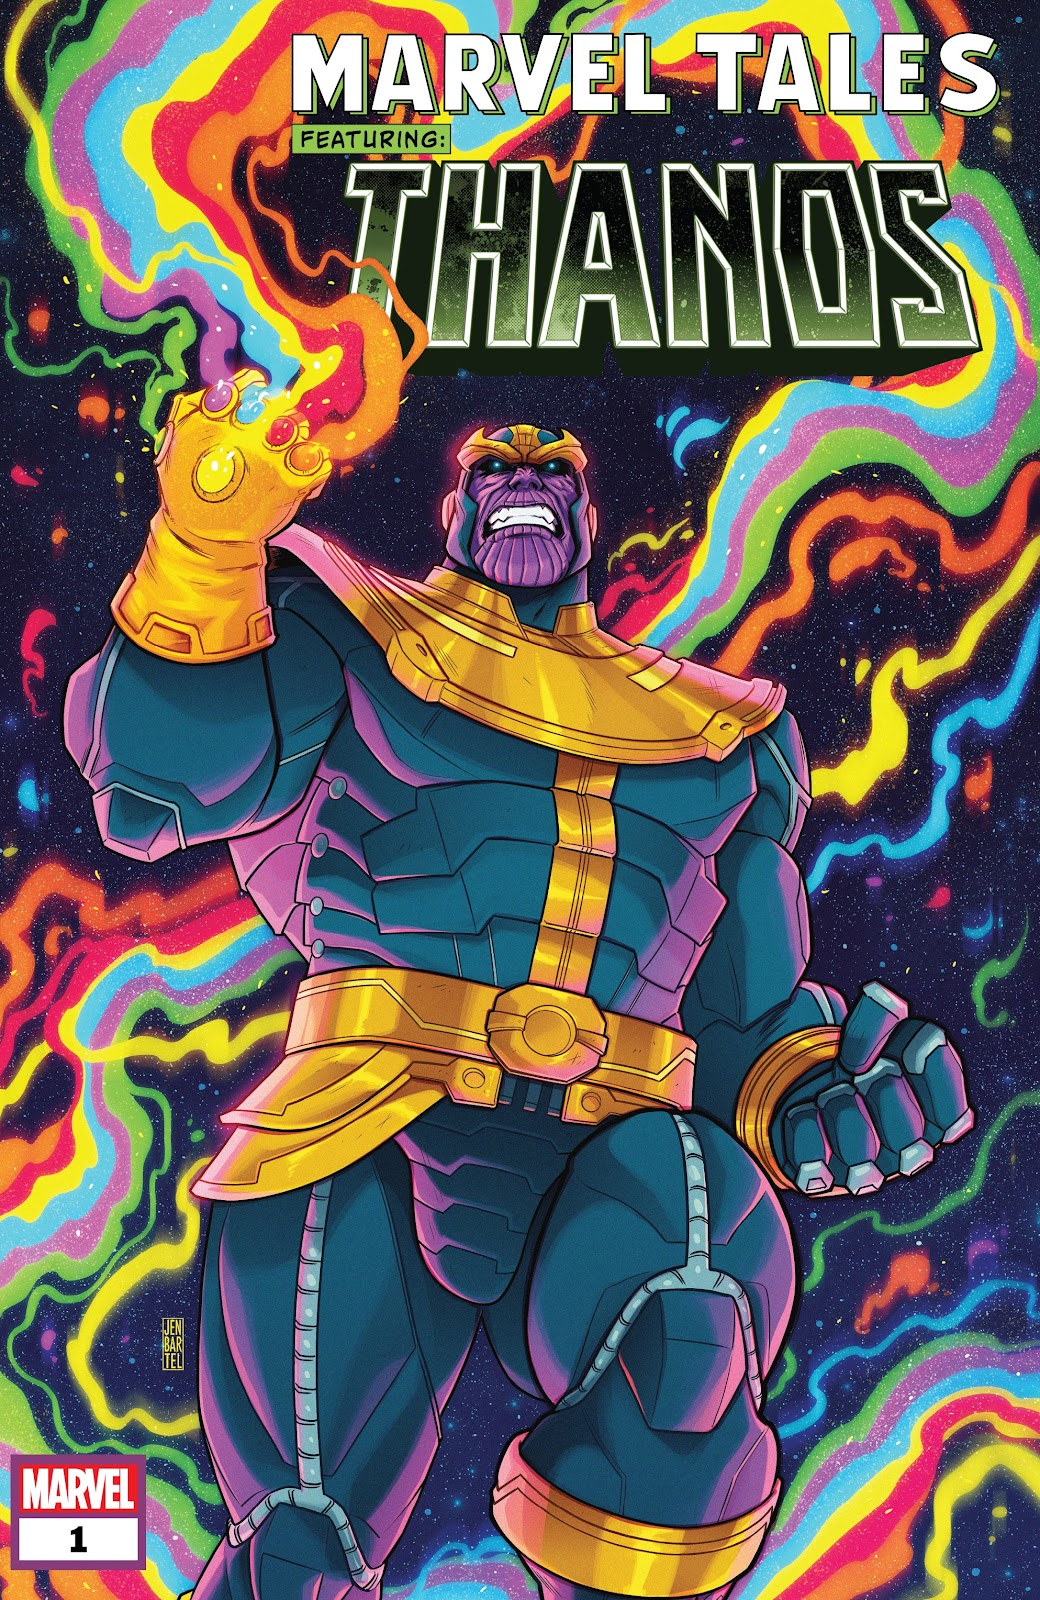 Read online Marvel Tales: Thanos comic -  Issue # Full - 1